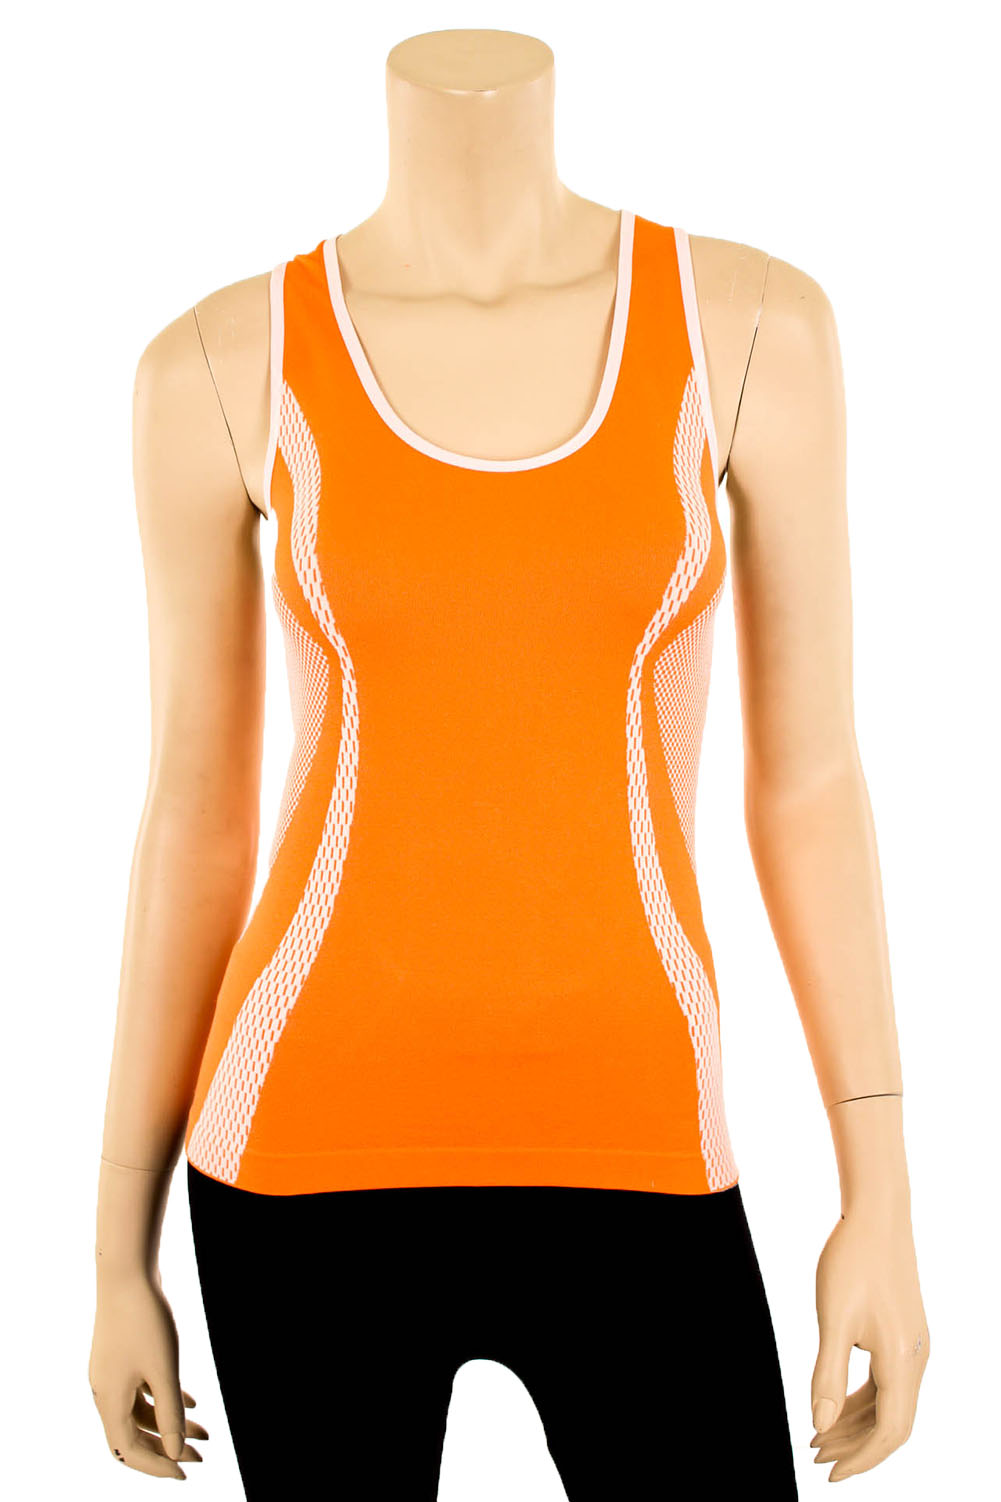 Womens Workout Tank, Funny Fitness Tank, Crossfit, Womens Fitness Tank, Gym Tank, Workout Clothing, Lifting Tank sodakduds. 5 out of 5 stars () $ Free shipping There are workout tank for sale on Etsy, and they cost $ on average. The most common workout tank material is ceramic. The most popular color? You guessed it.